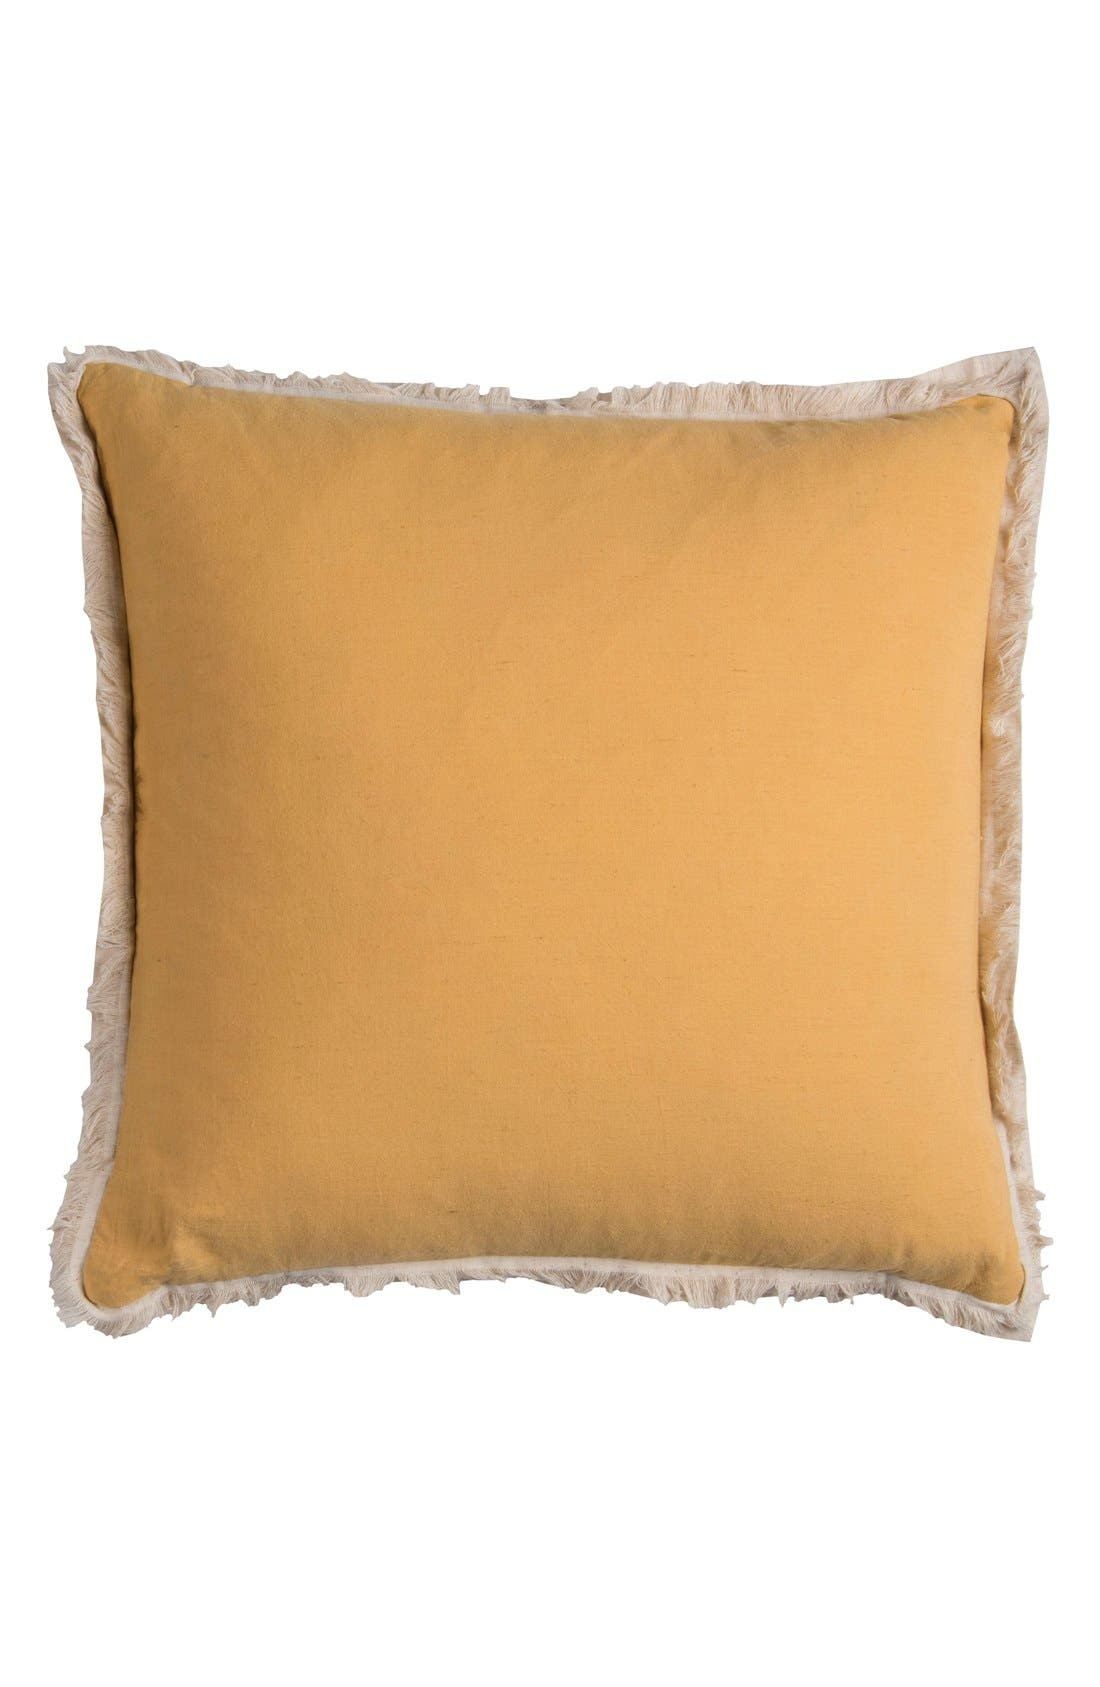 Fringe Accent Pillow,                             Main thumbnail 1, color,                             100